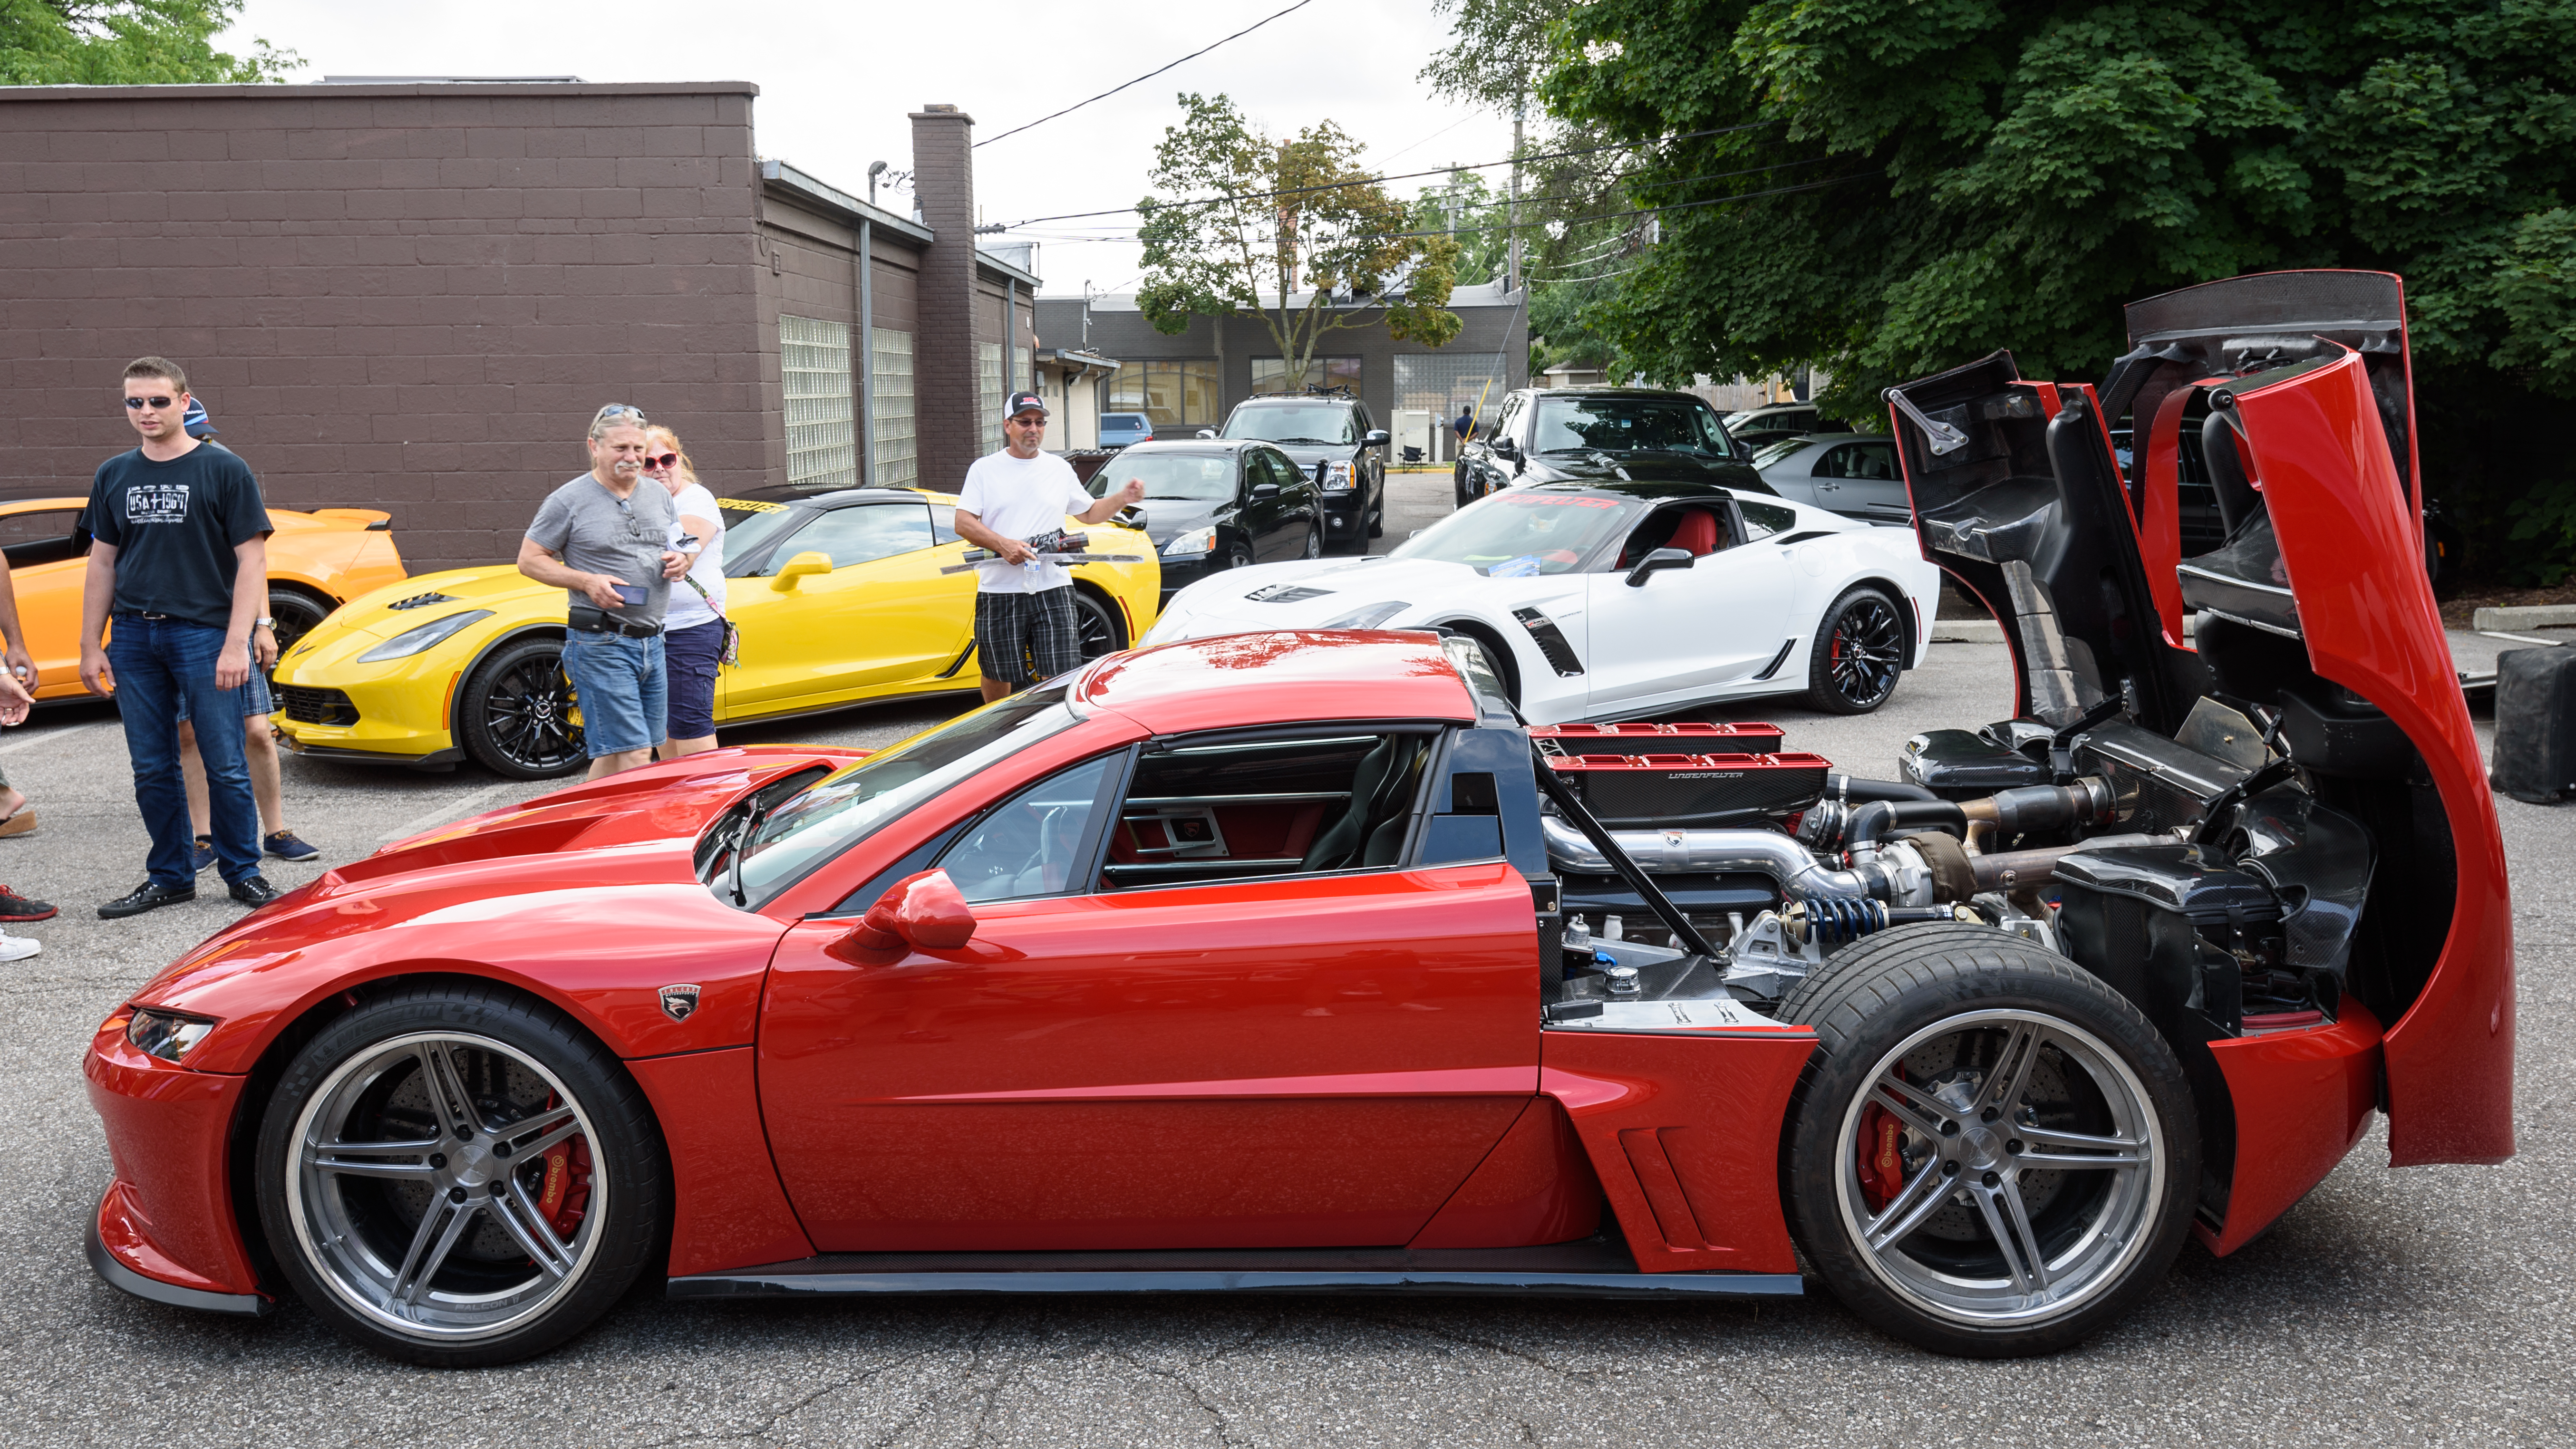 2013 Falcon F7, Outdoor, Other Keywords, Public domain, Show, HQ Photo